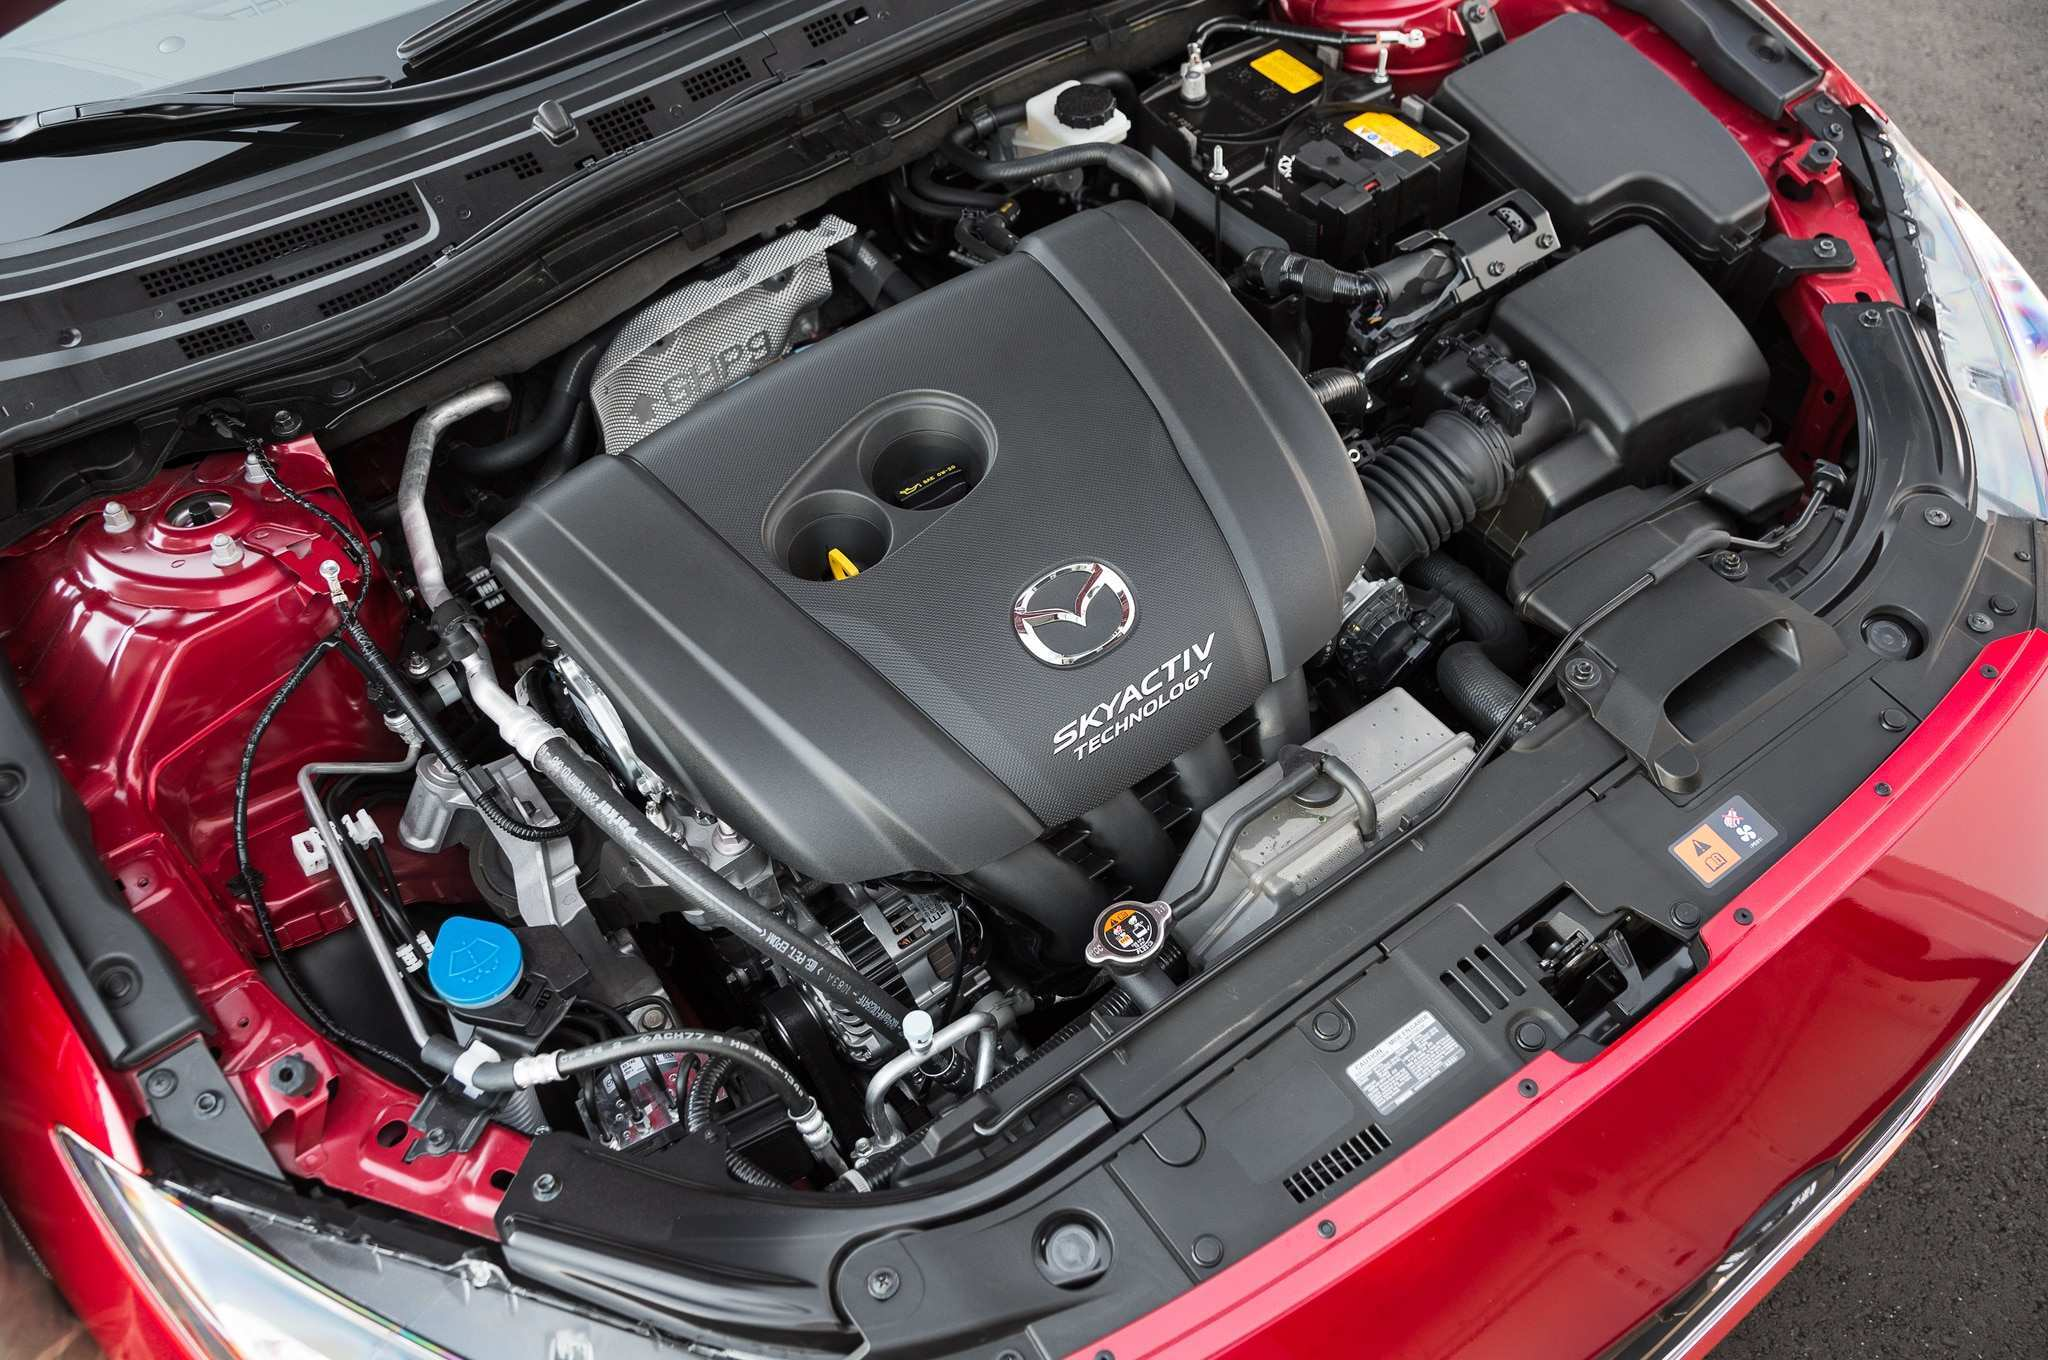 54 All New Mazda Engine 2020 Model